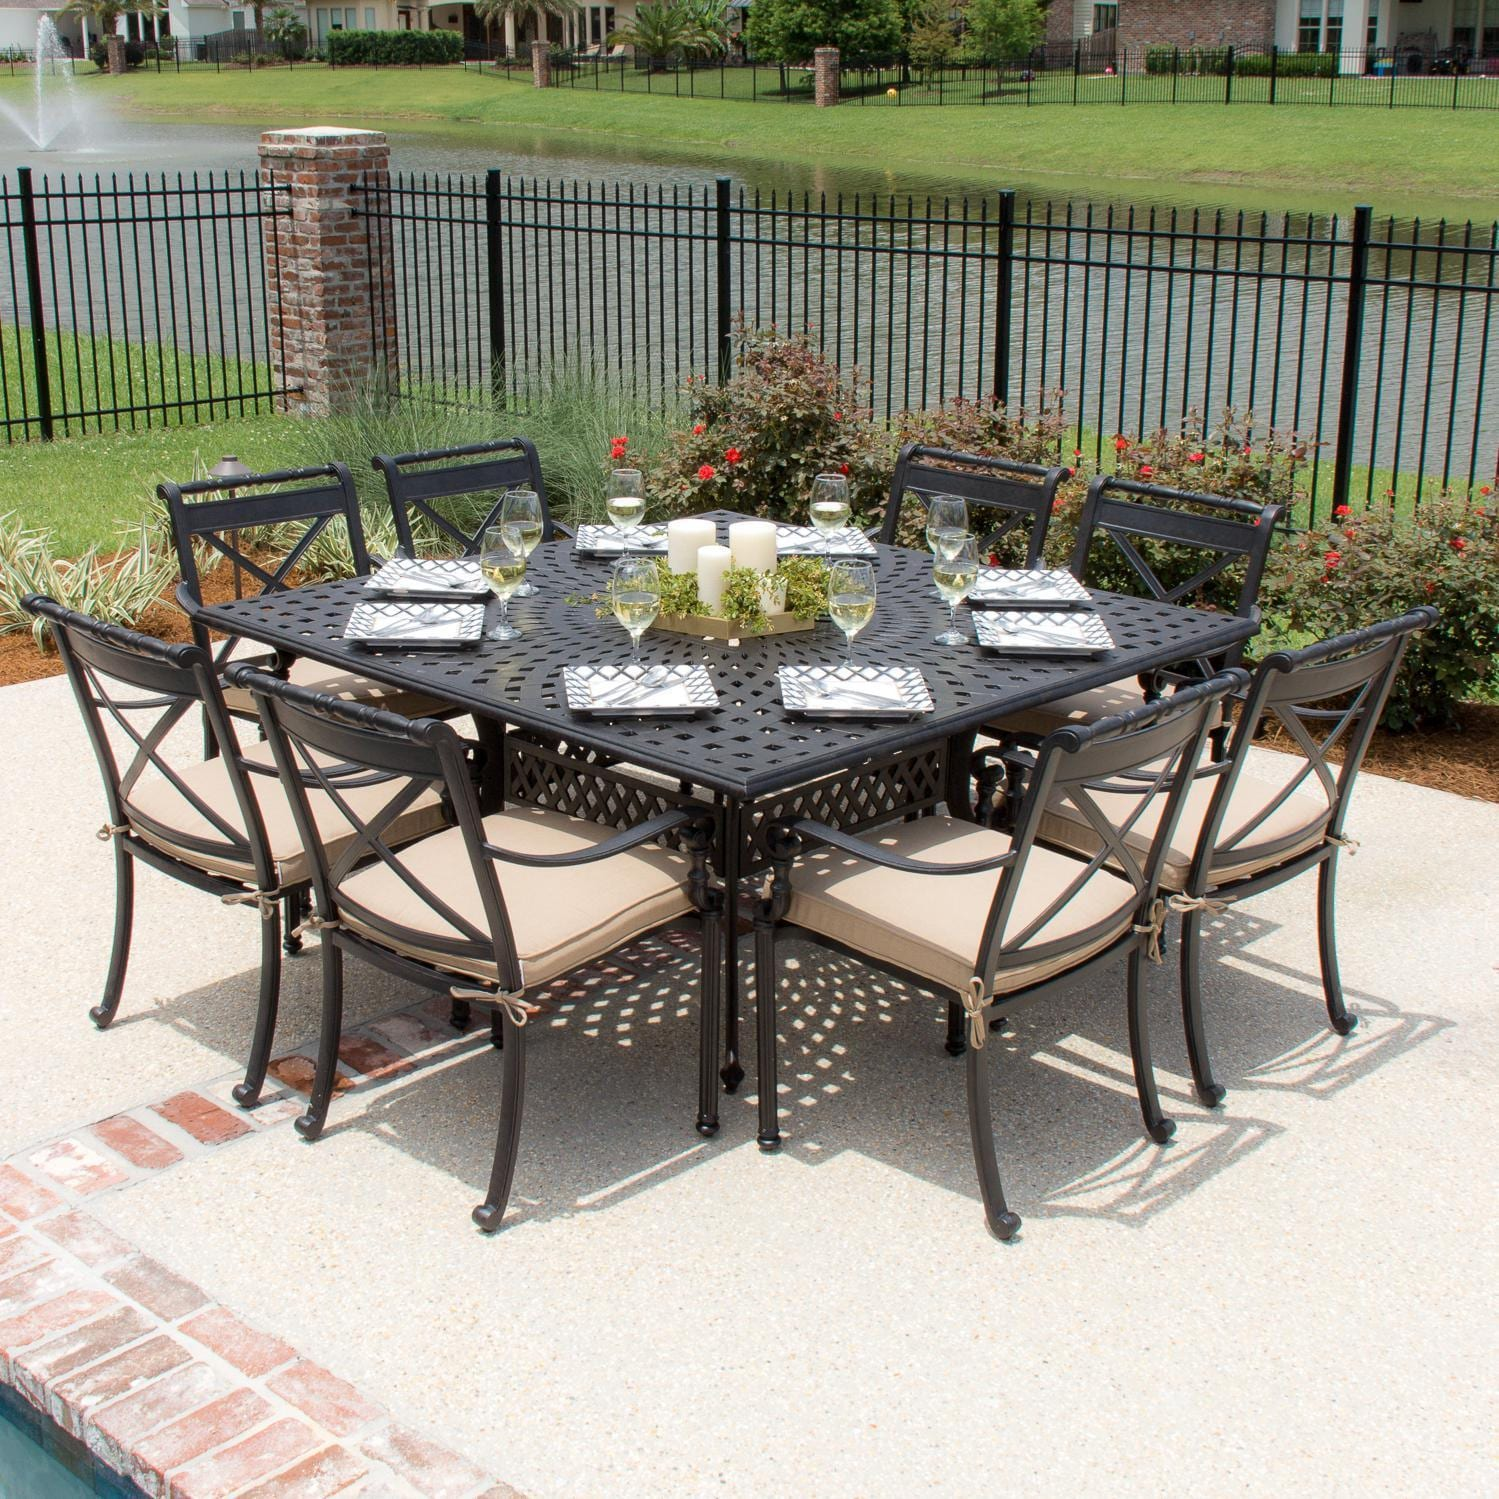 Picture of: Carrolton 8 Person Cast Aluminum Patio Dining Set With Square Table Overstock 10332256